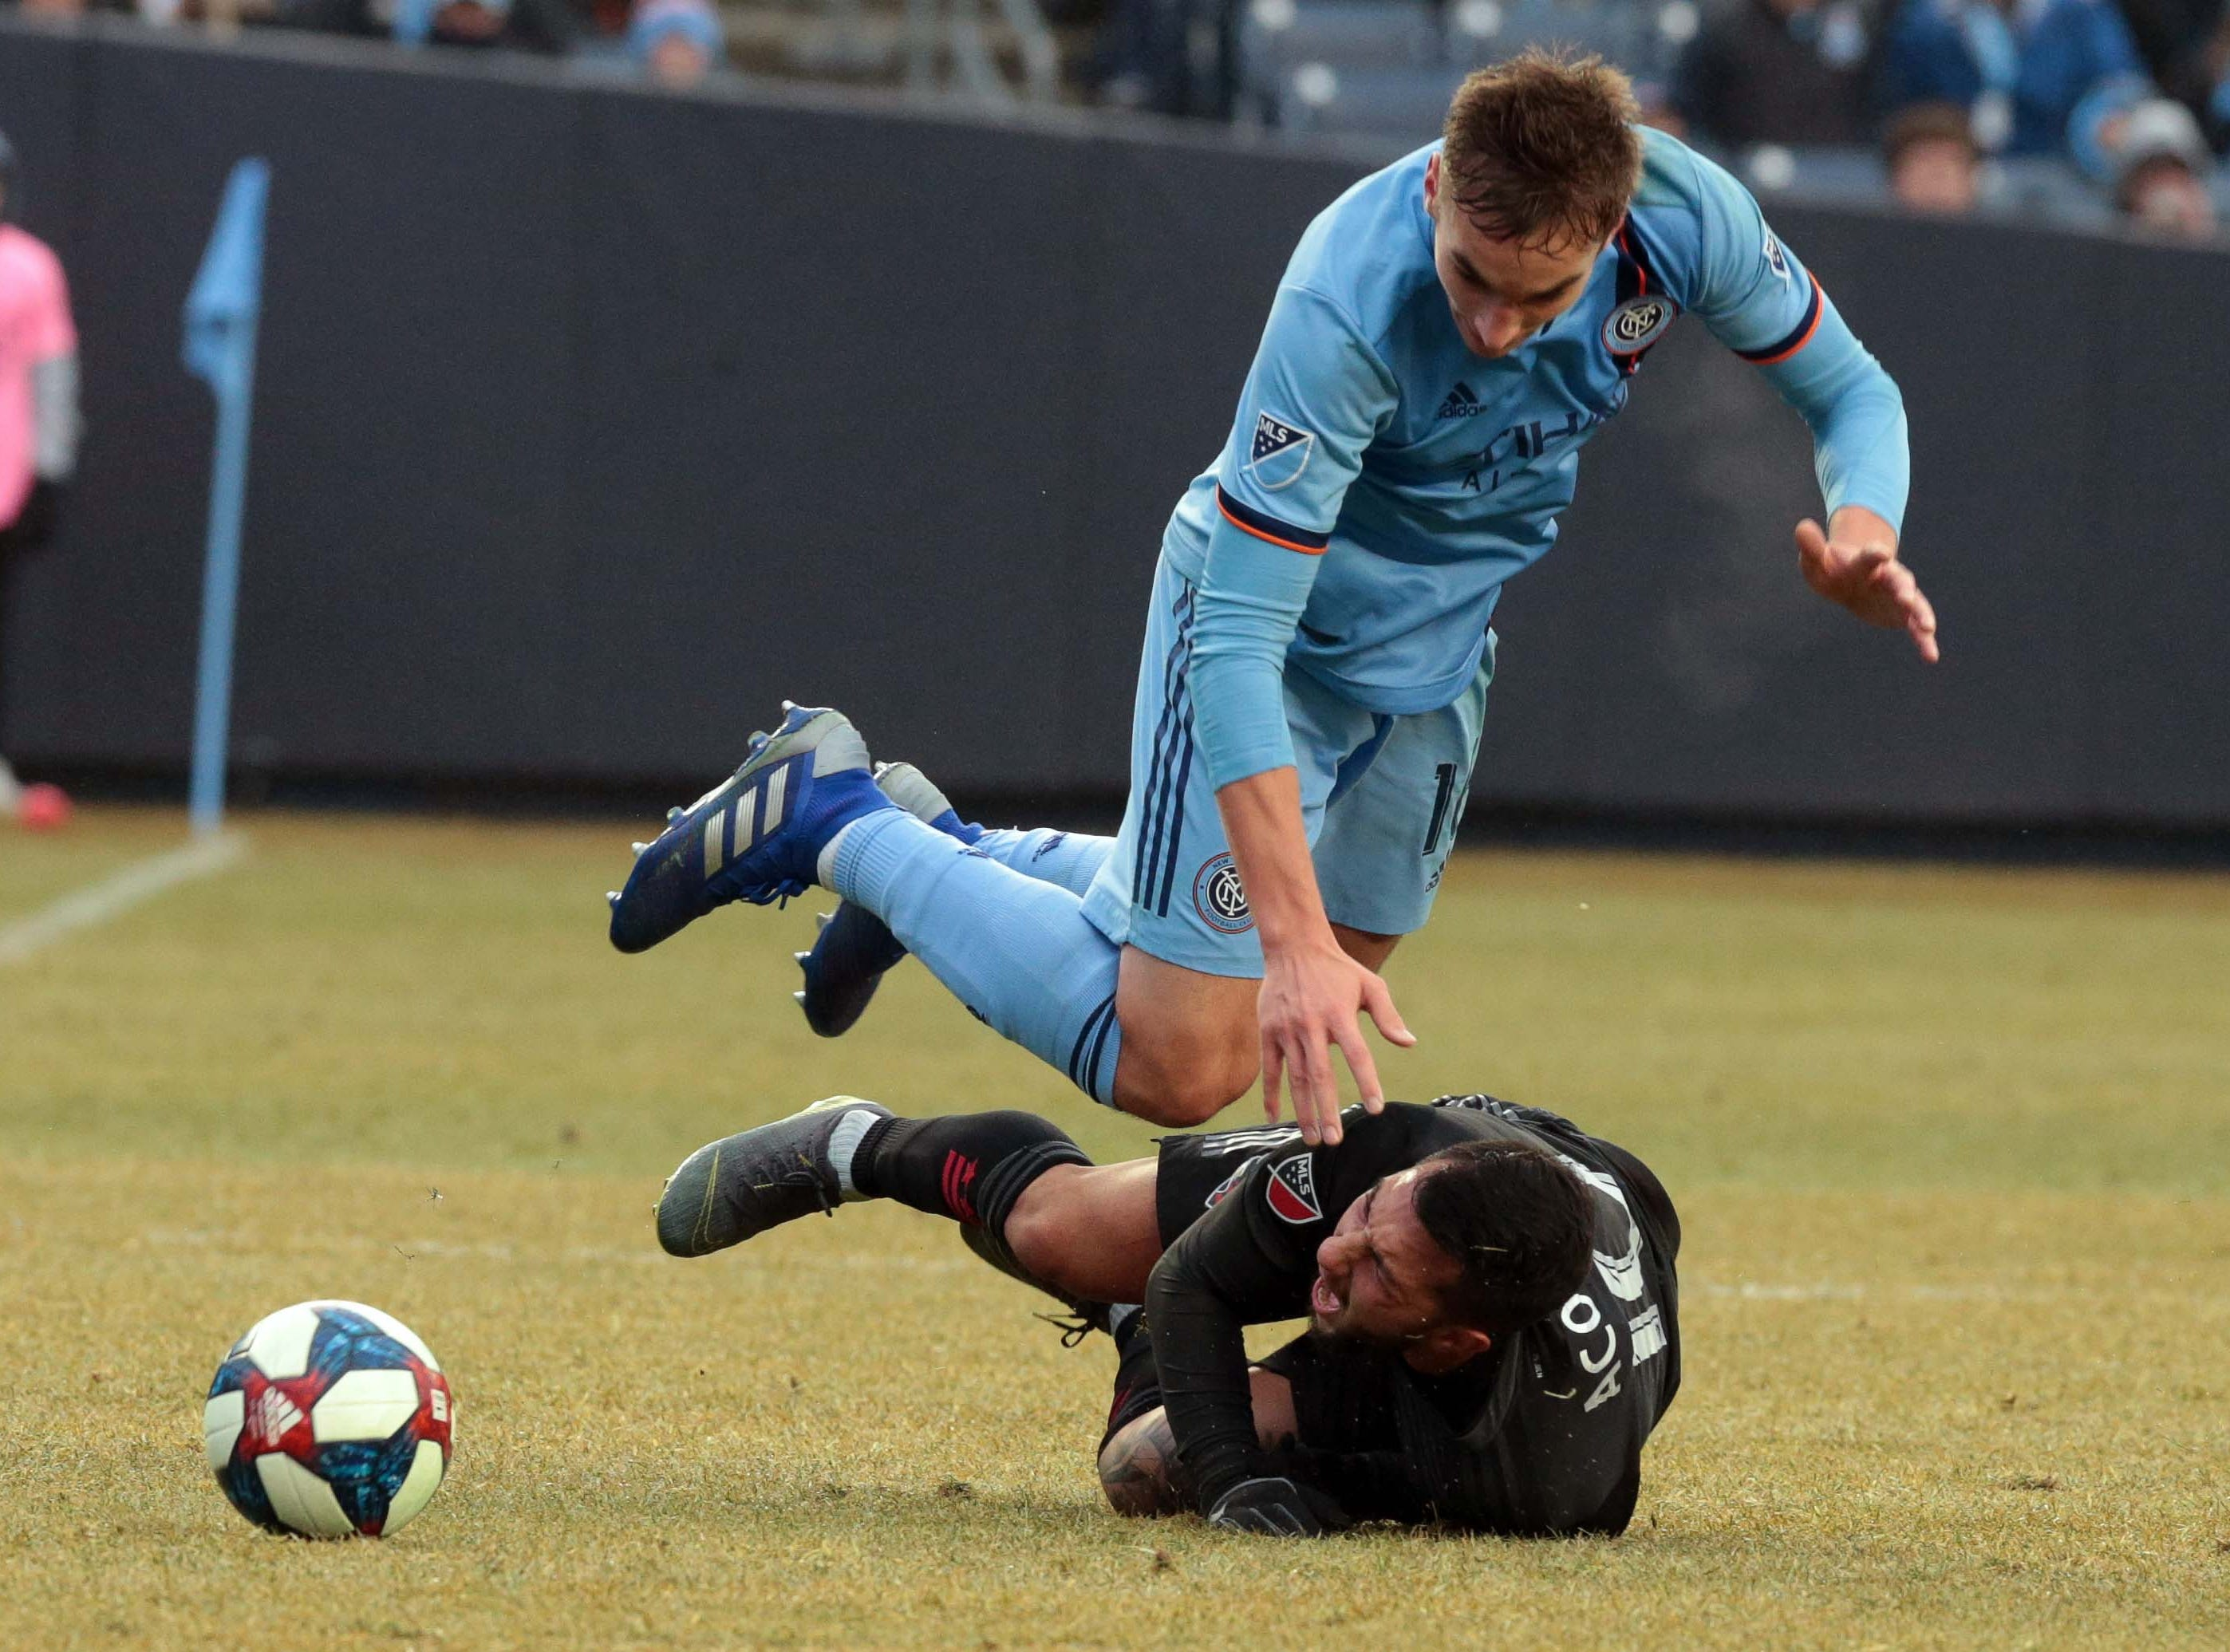 March 10: New York City midfielder James Sands (16) battles for the ball with D.C. United midfielder Luciano Acosta (10) during the second half at Yankee Stadium.